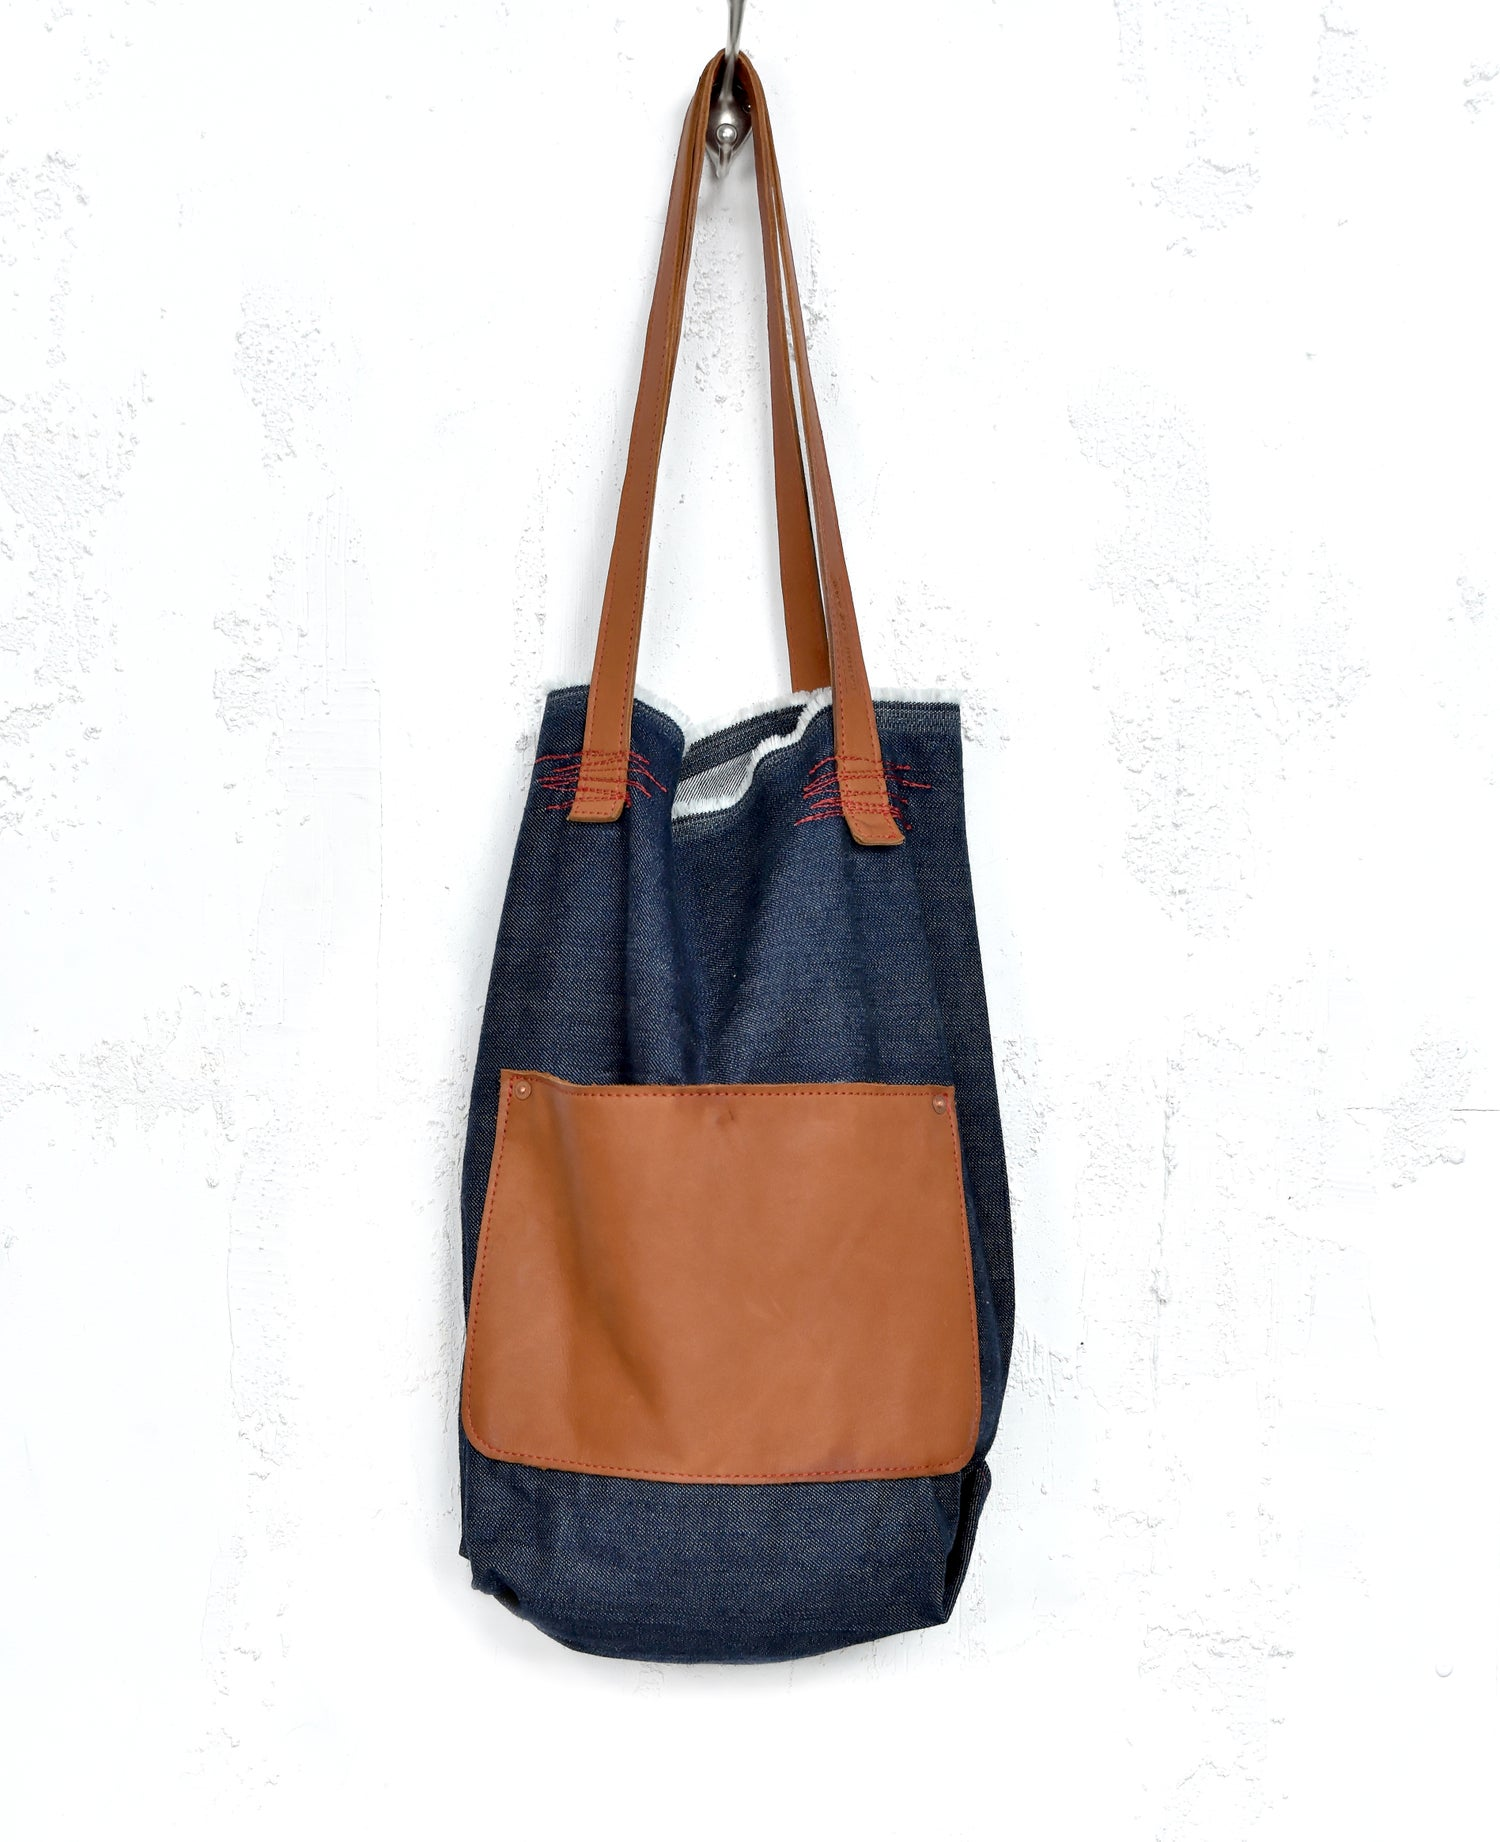 Image of Summer Boho Shopper, Denim Leather Tote Bag